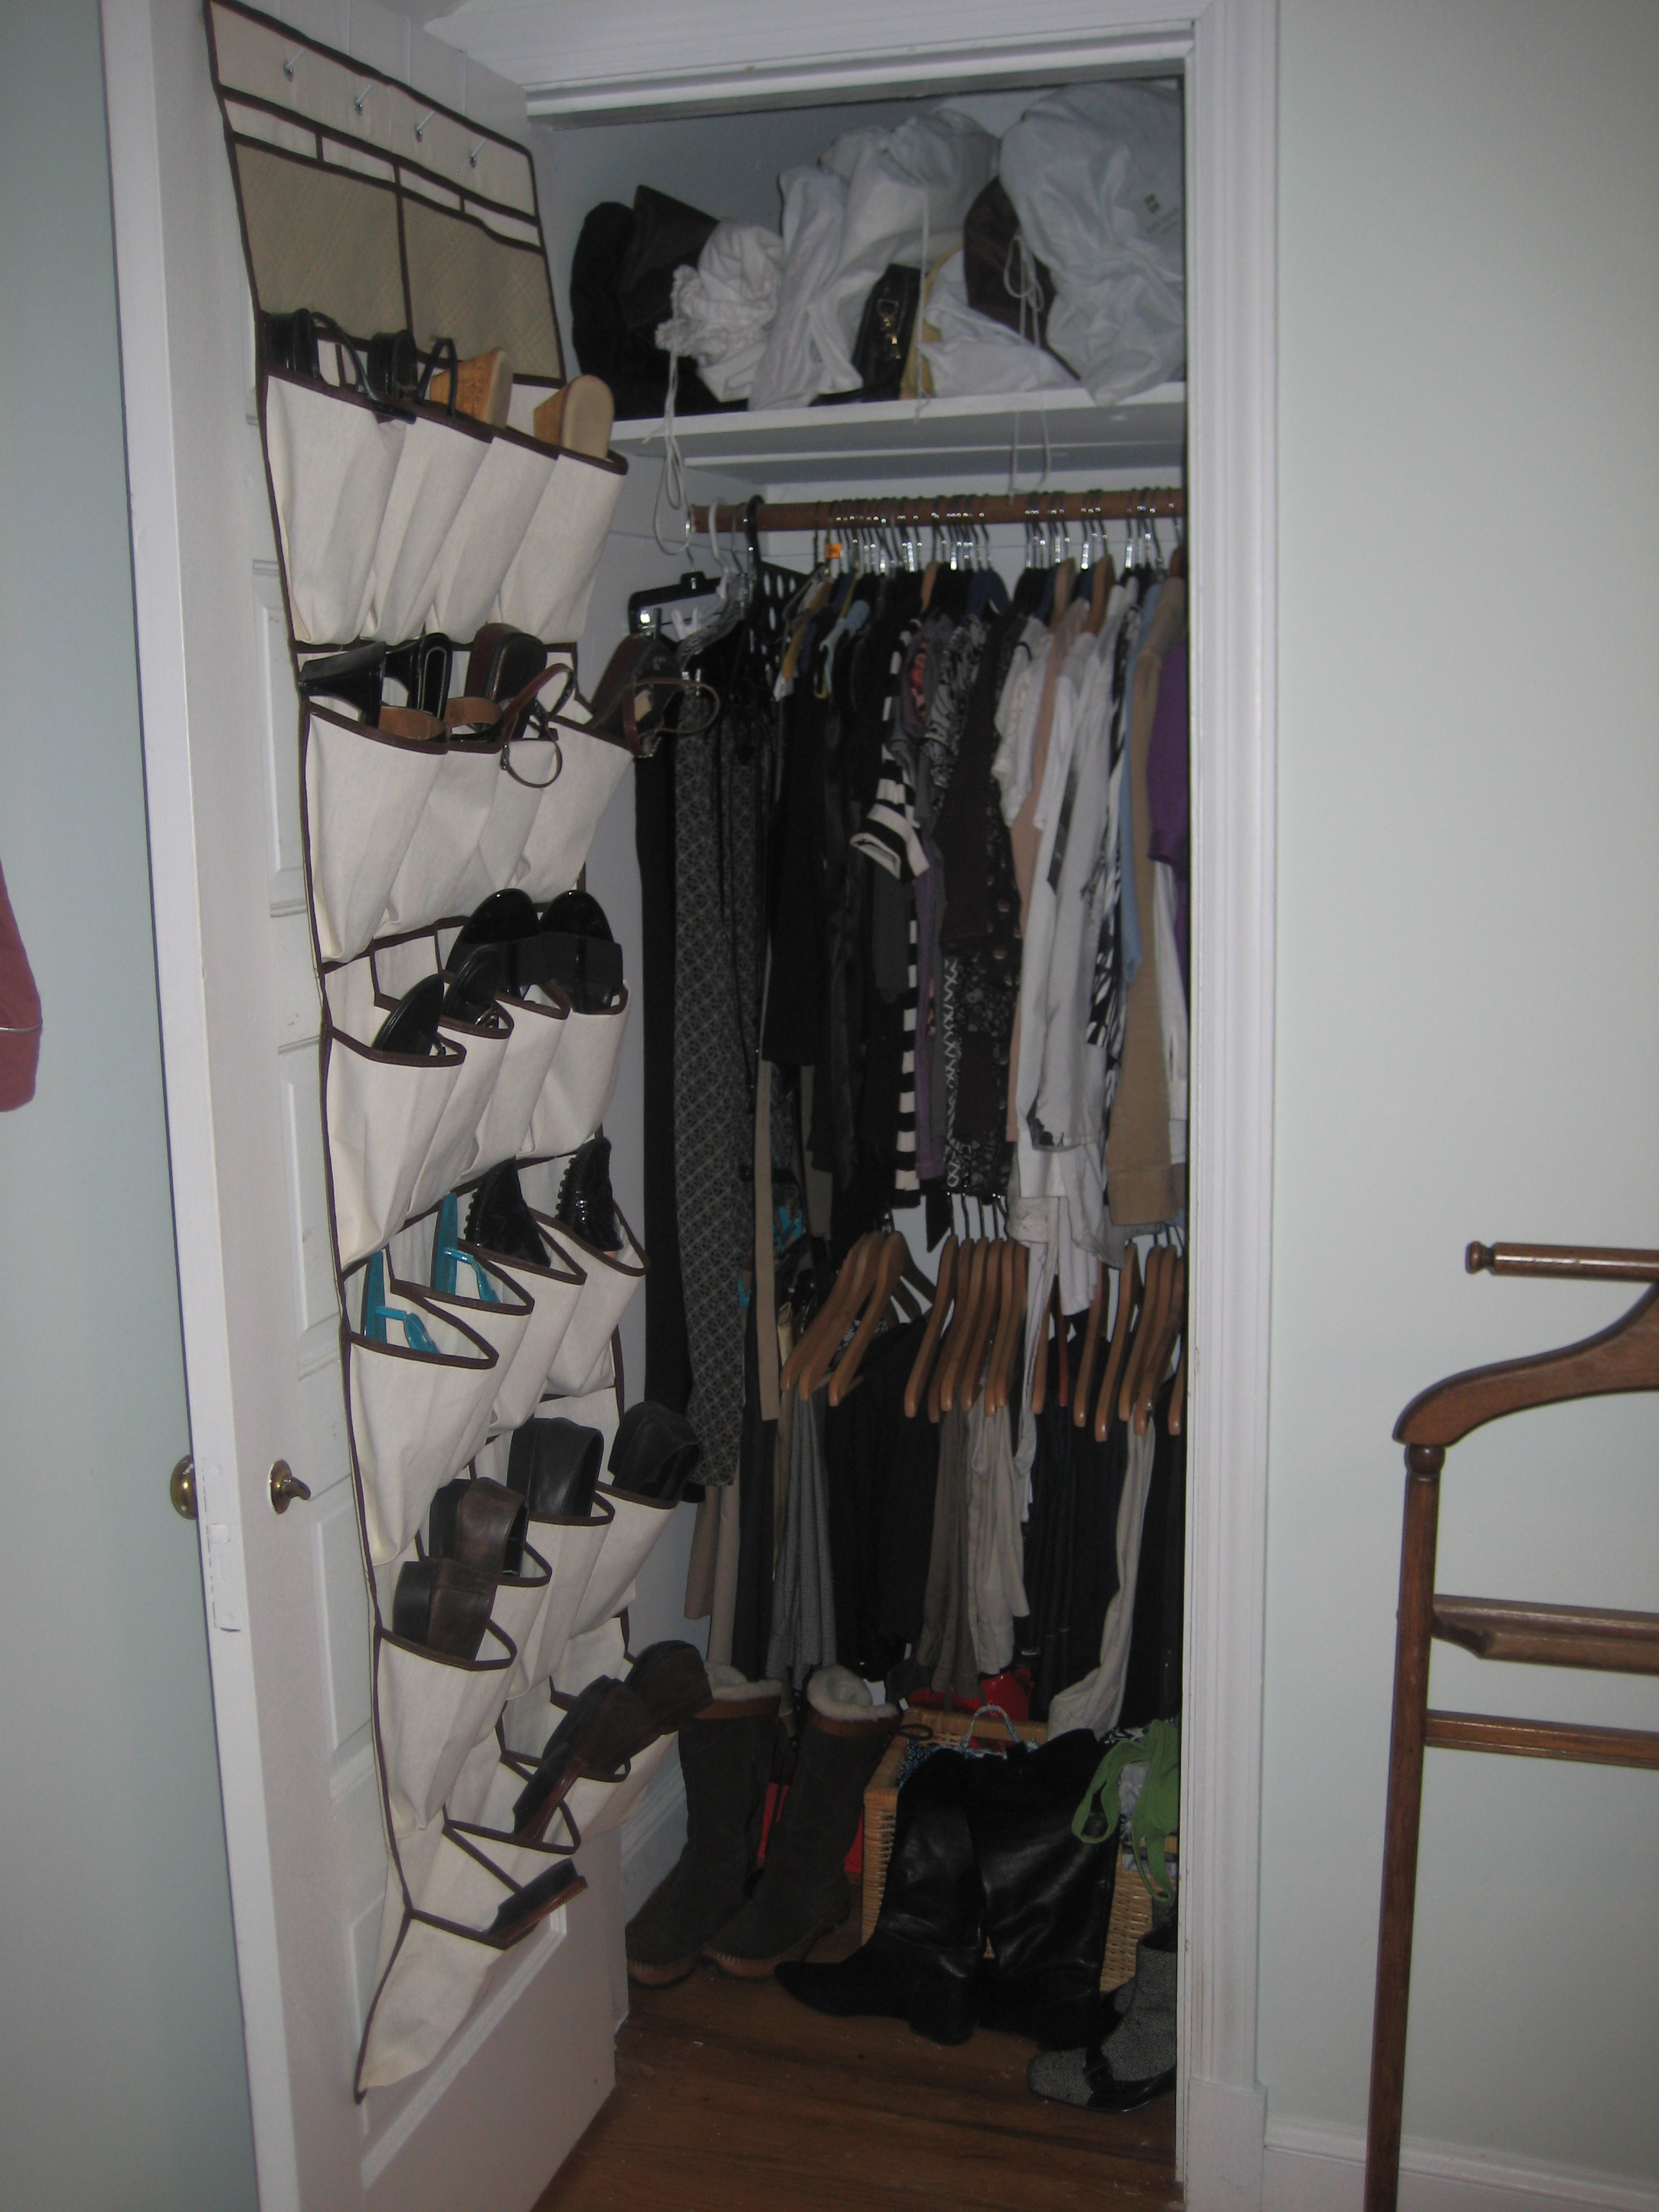 Fitting A 21st Century Sized Big Wardrobe Into A Small 1948 Closet, Like  This One